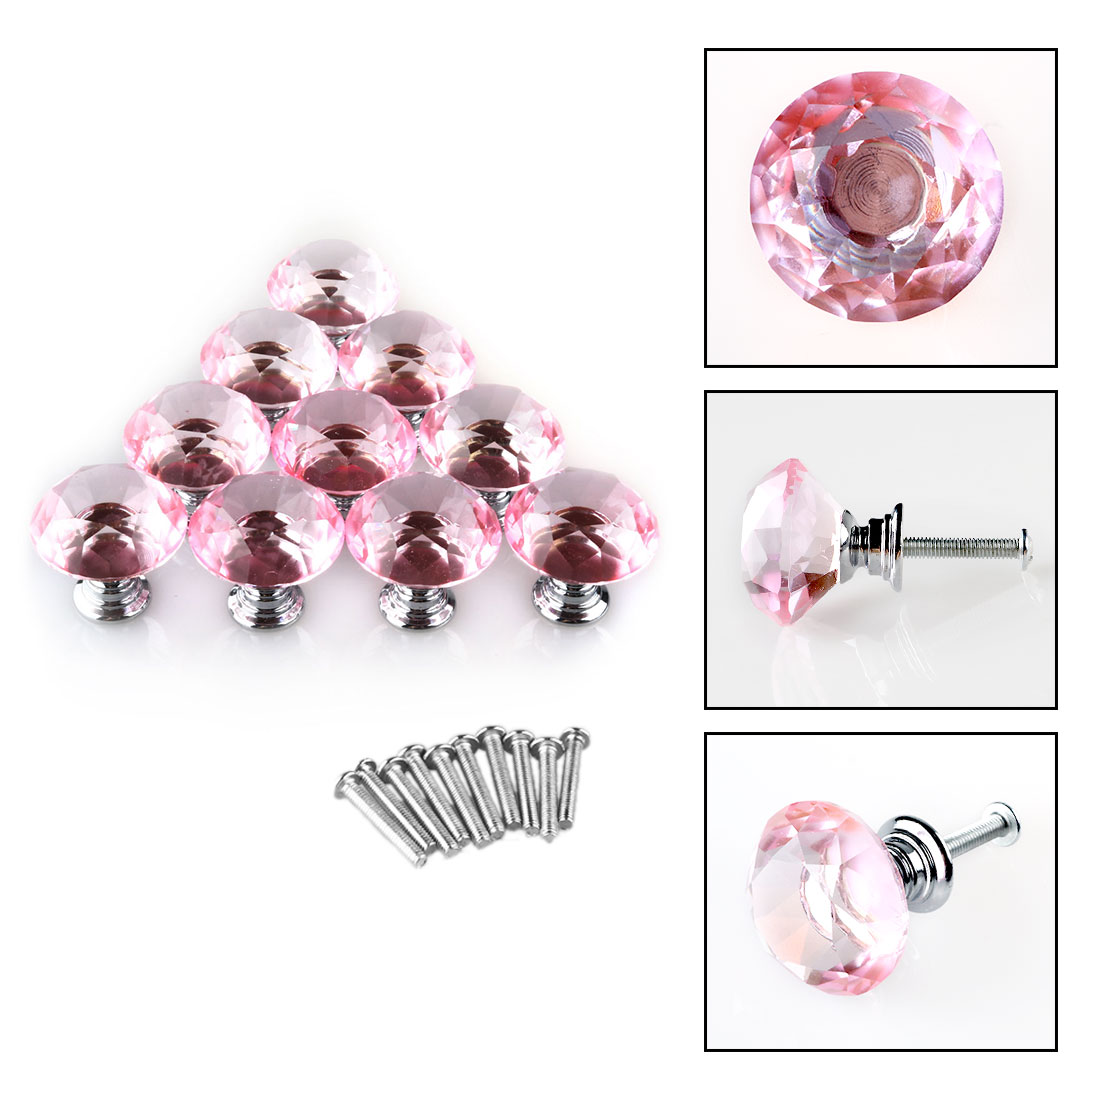 30mm Diamond Crystal Glass Drawer Knobs Home Kitchen Cabinet Cupboard Pull Handle Knobs,1,6,8,10,20pcs